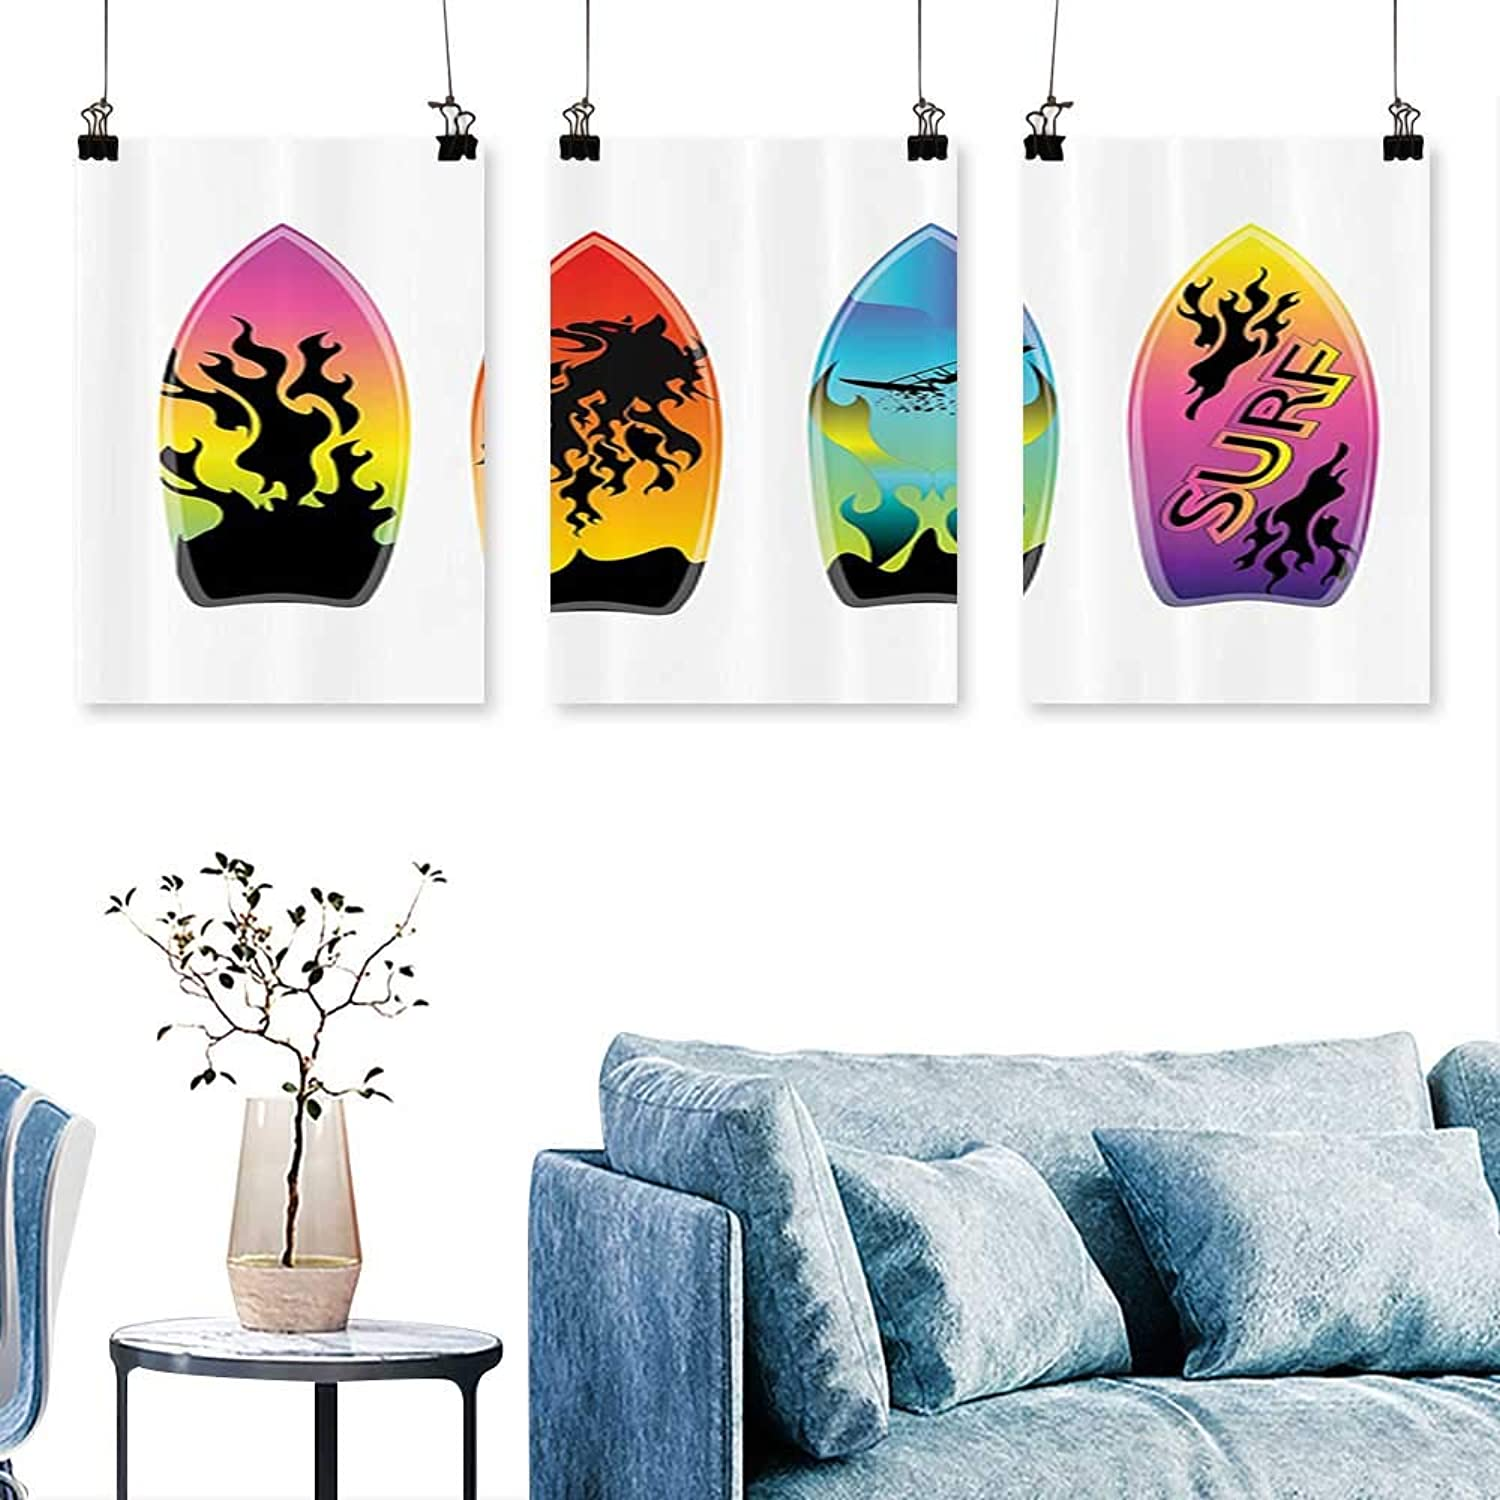 SCOCICI1588 3 Panels Triptych urfboard Undulate Windsurf Youth Culture Freedom California Ocean Sand Time for Home Modern Decoration No Frame 30 INCH X 60 INCH X 3PCS